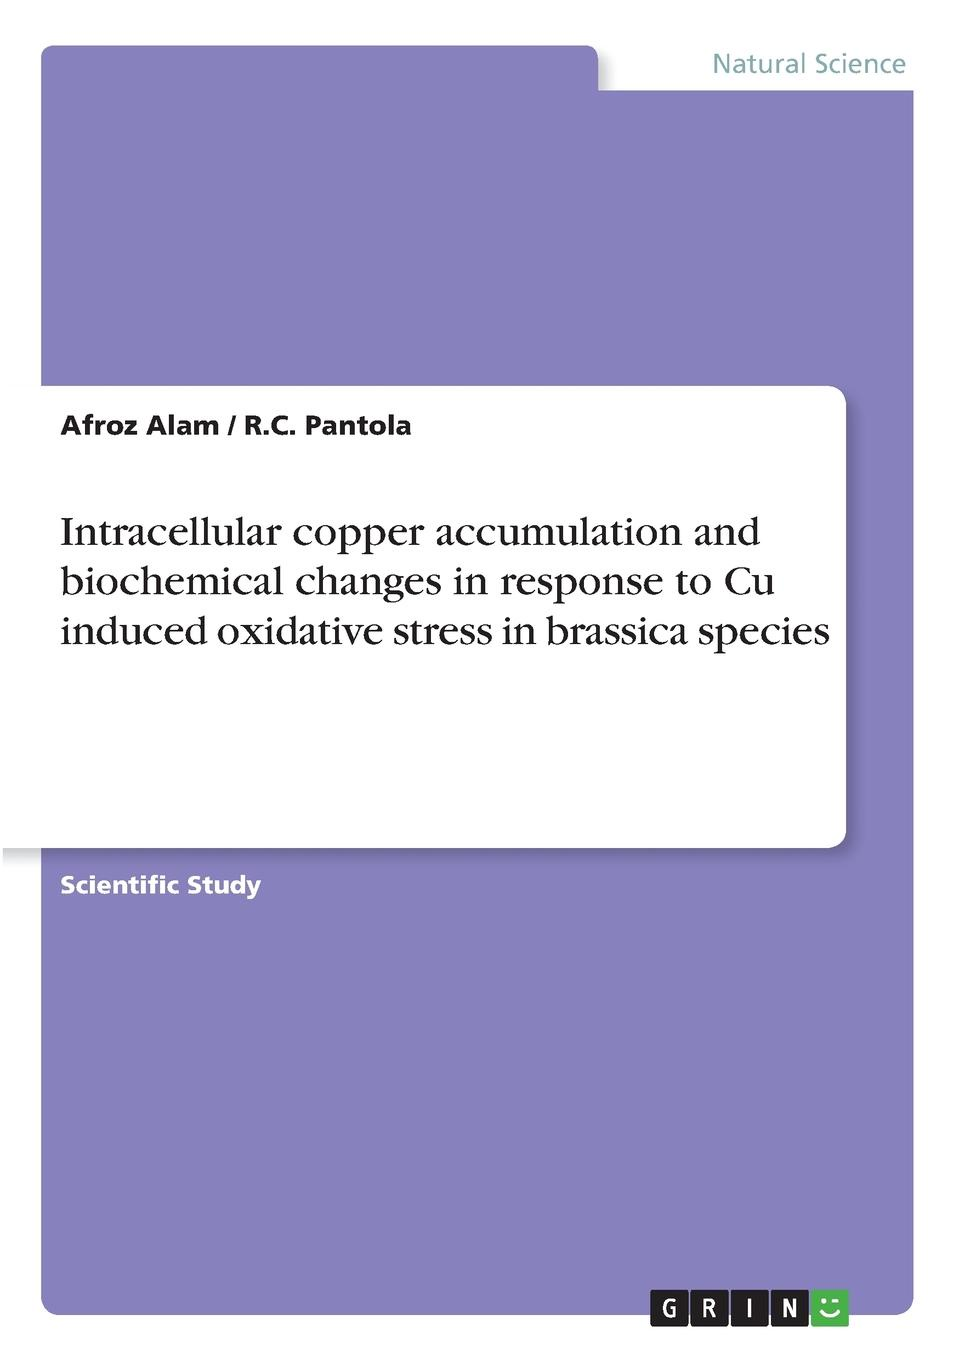 Afroz Alam, R.C. Pantola Intracellular copper accumulation and biochemical changes in response to Cu induced oxidative stress in brassica species bioavailability and solubility equilibria of heavy metals in soils